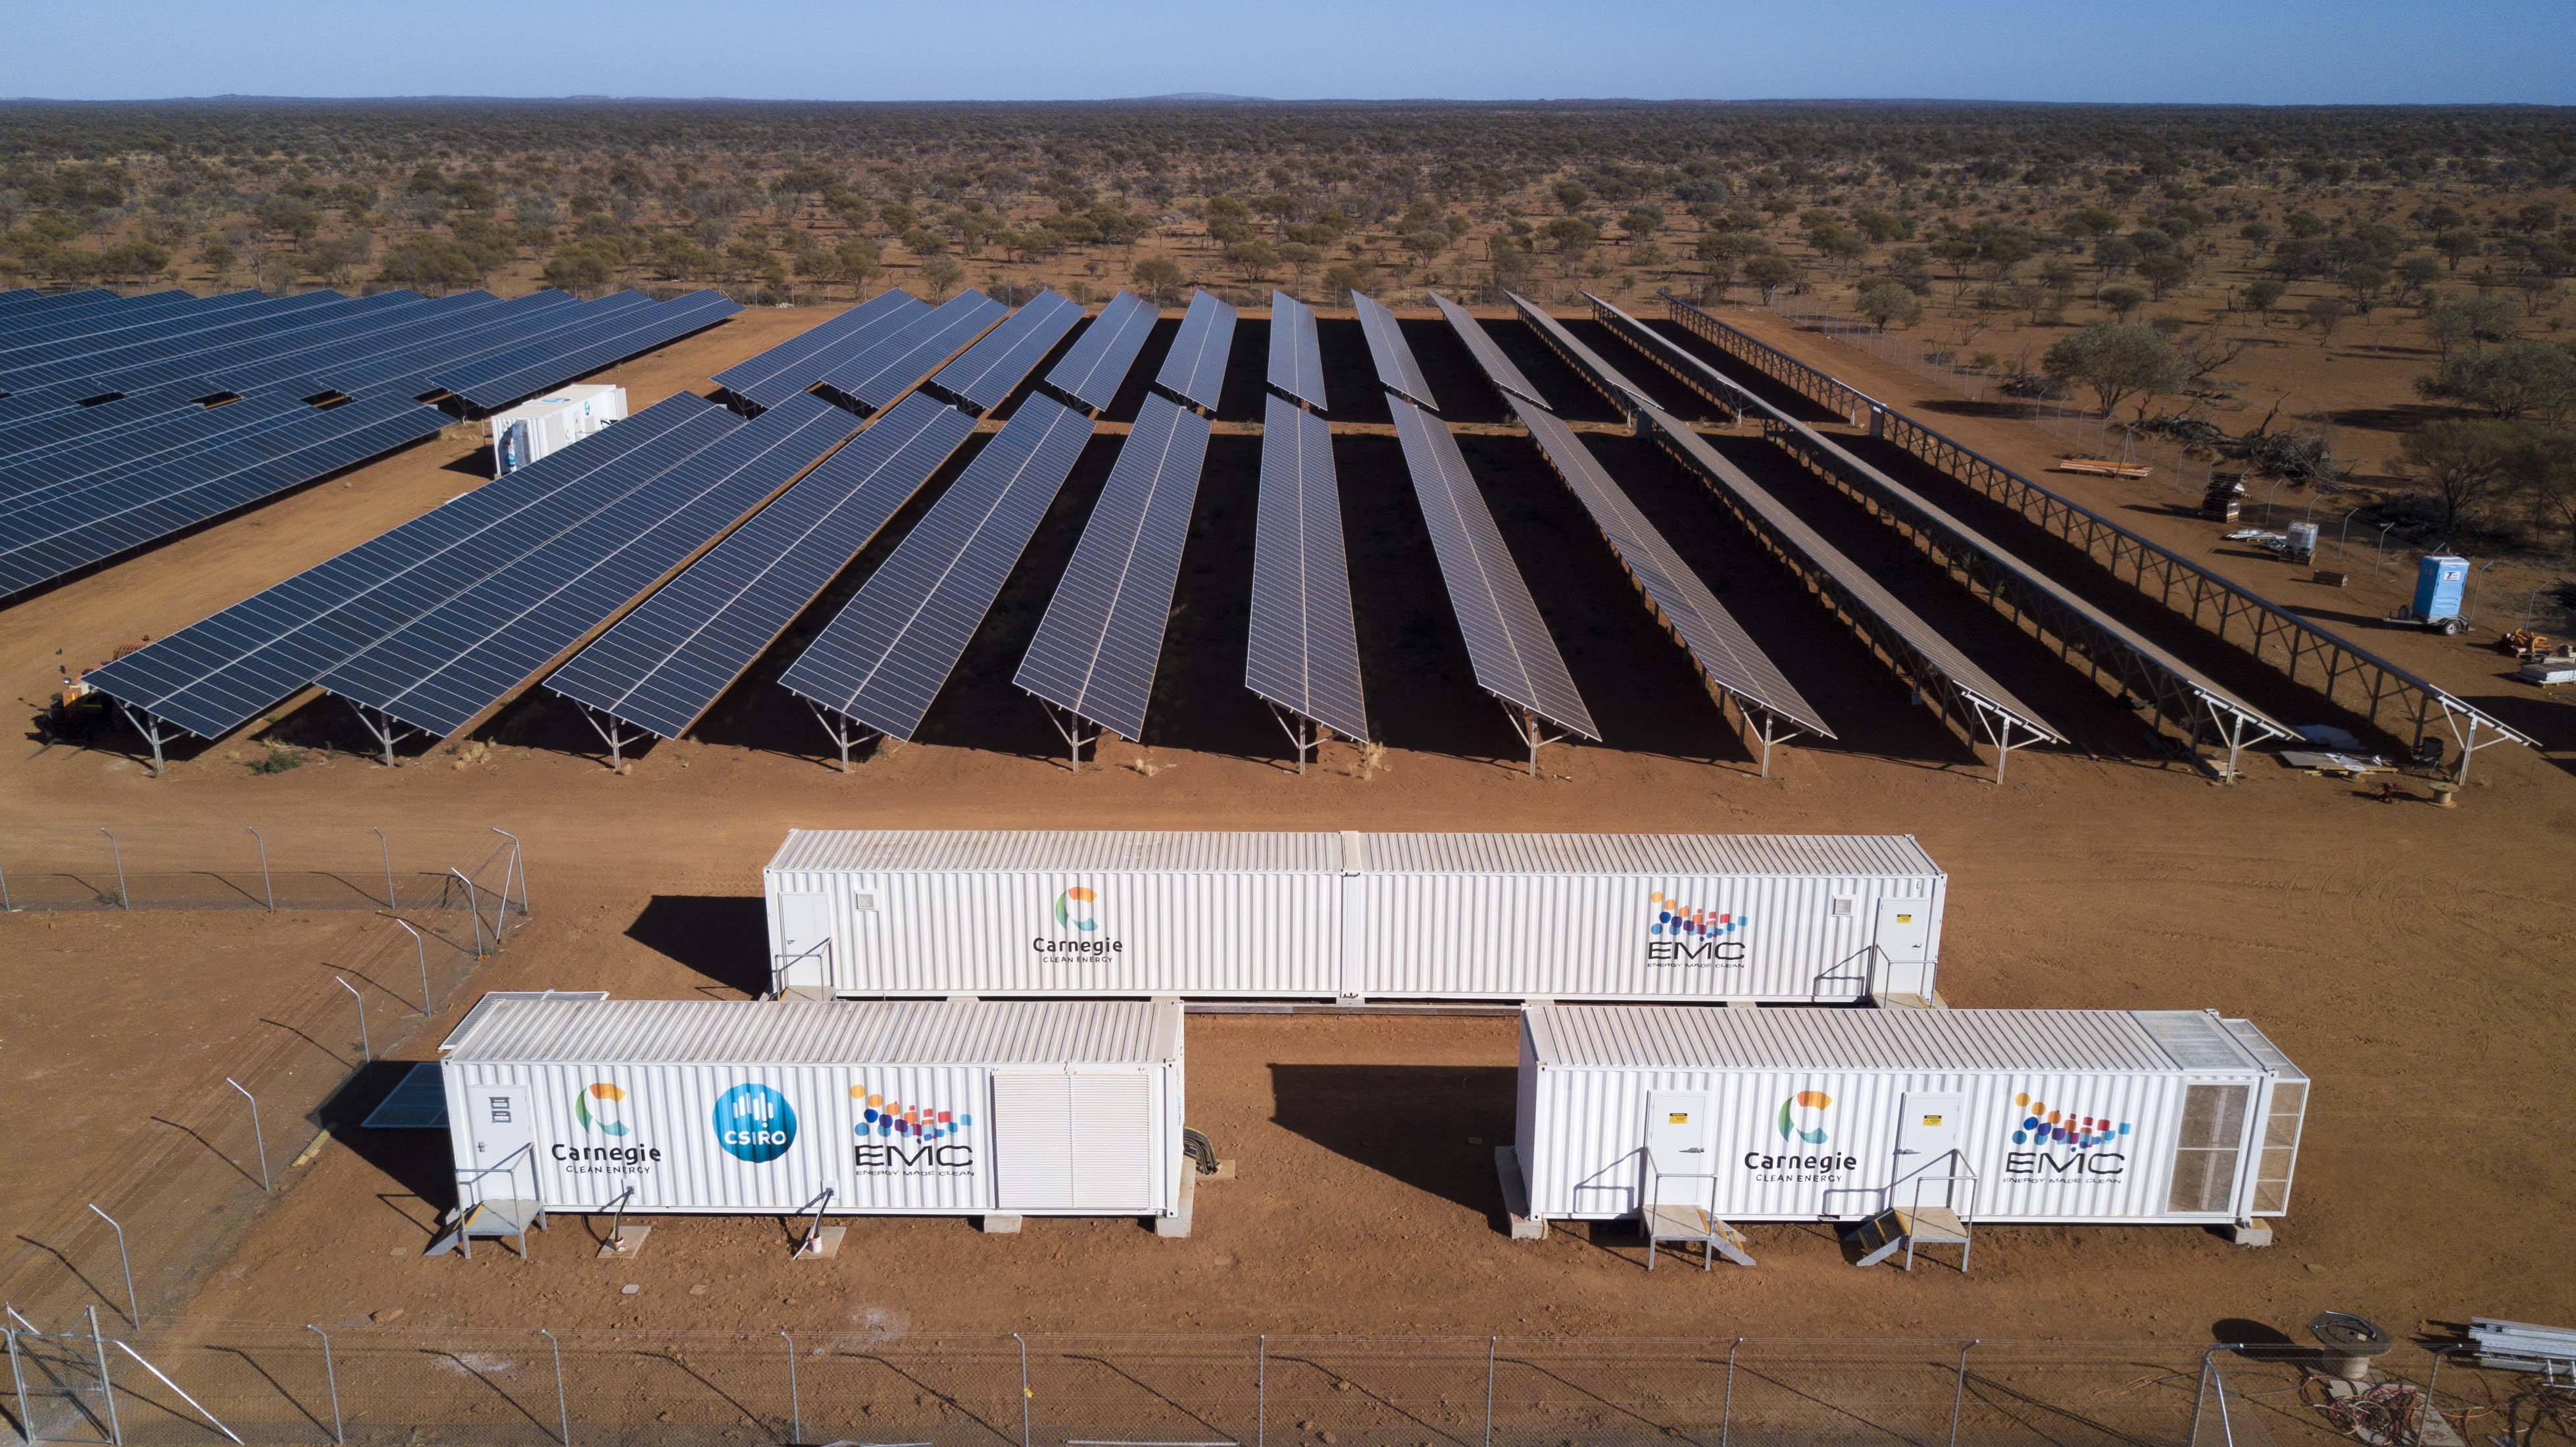 Containers in foreground with rows of photovoltaic cells behind, situated in red desert surroundings